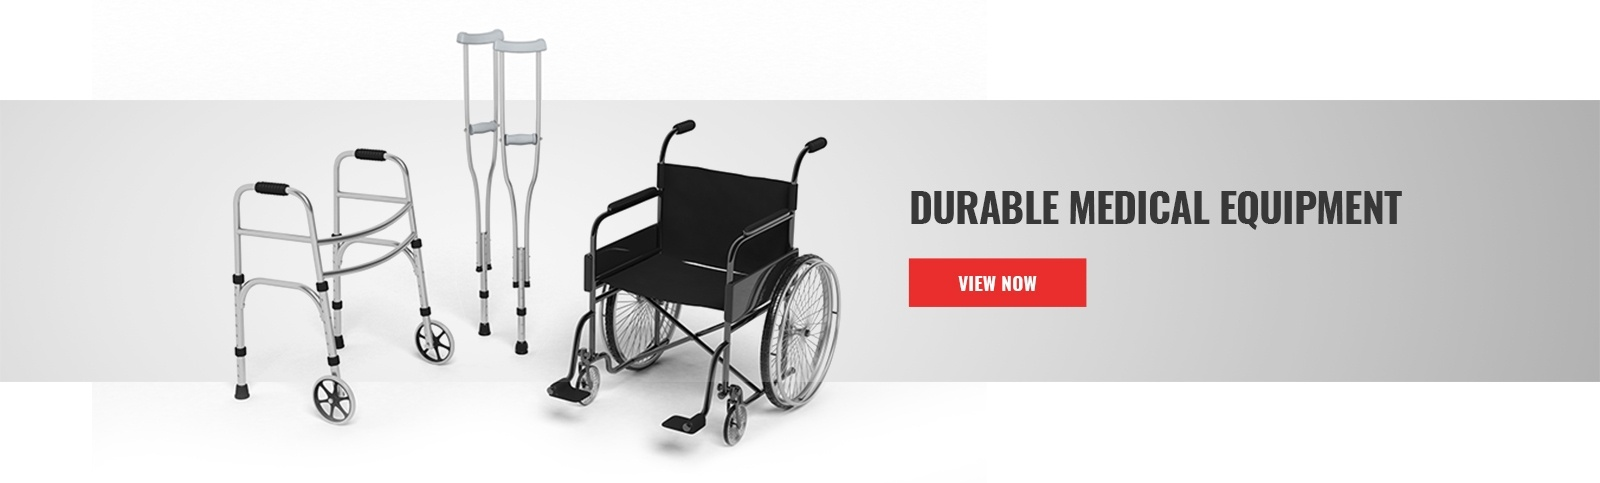 Durable Medical Equipments in Ellicott City, MD